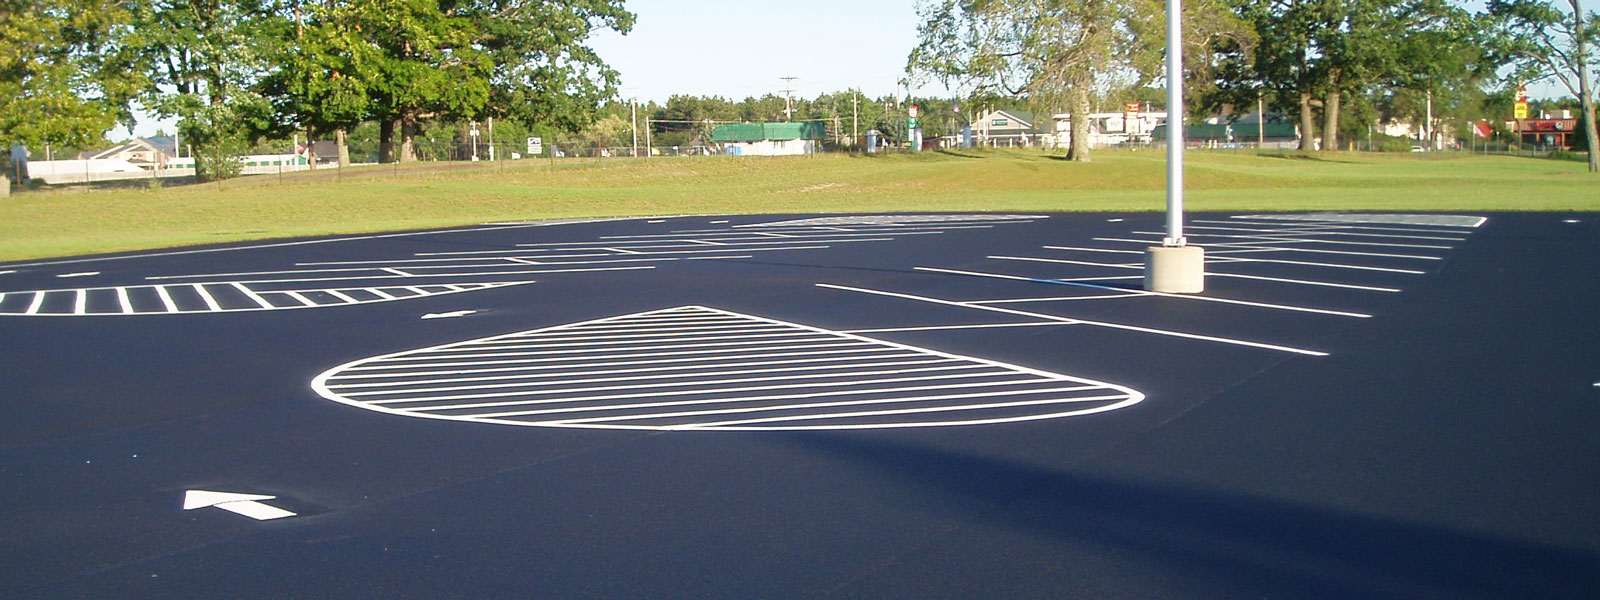 parking lot asphalt sealing and striping services in mason and manistee counties and surrounding areas.